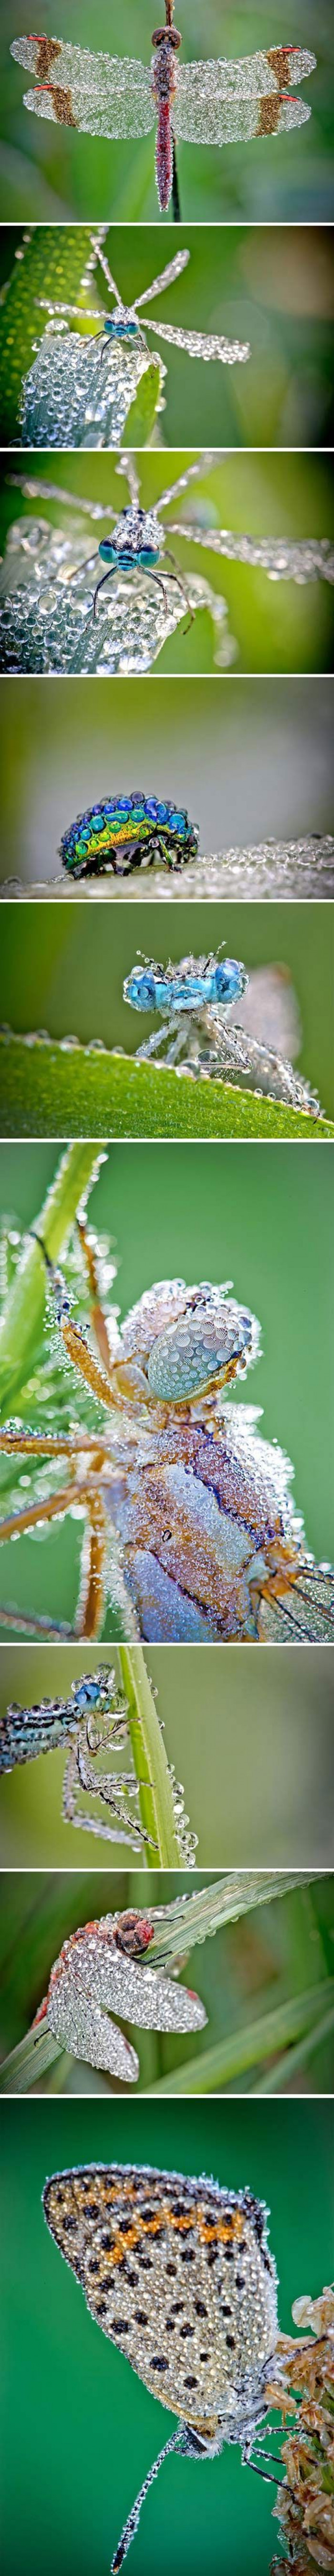 Droplets On These Insects Will Leave You Mesmerized